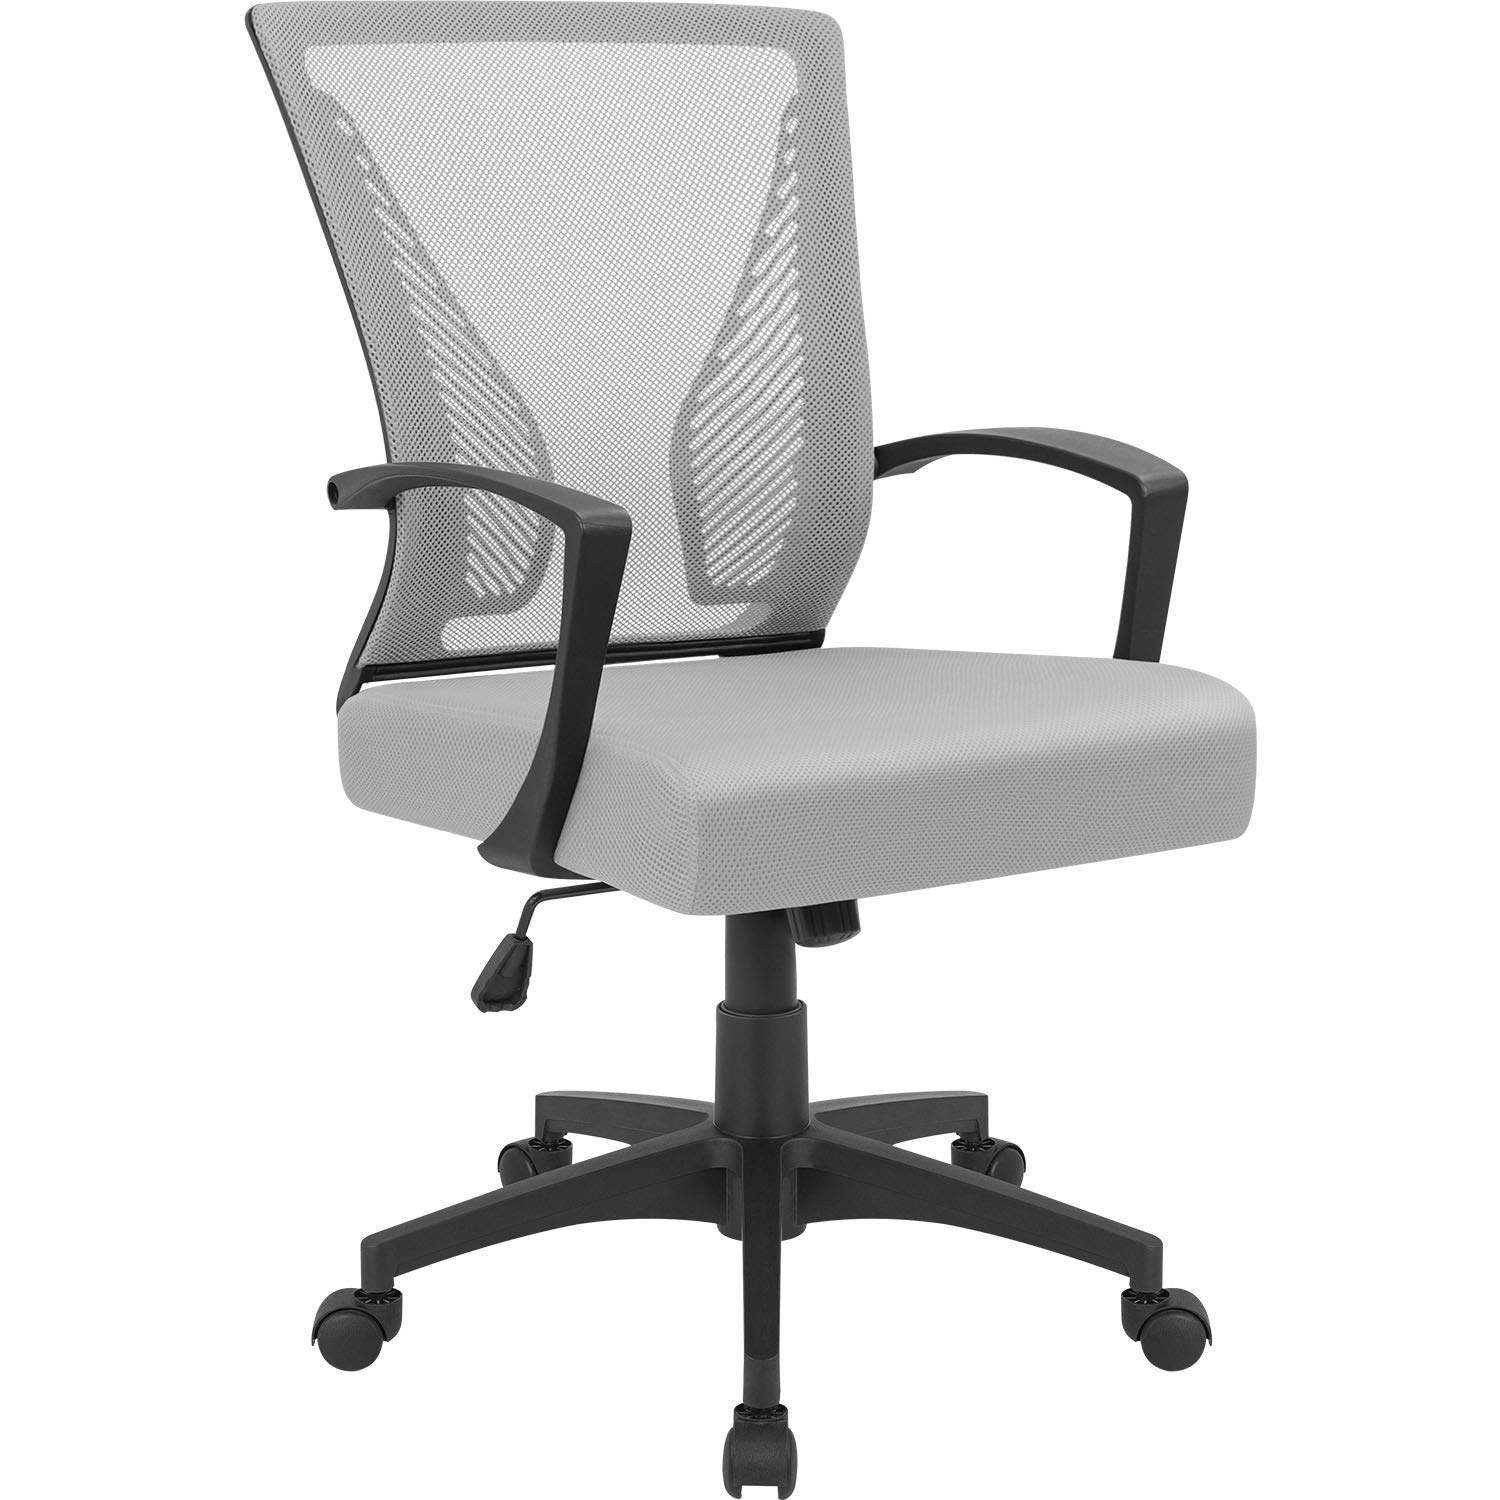 Furmax Gray7504 Office Mid Back Swivel Lumbar Support Desk, Computer Ergonomic Mesh Chair with Armrest (Gray) by Furmax